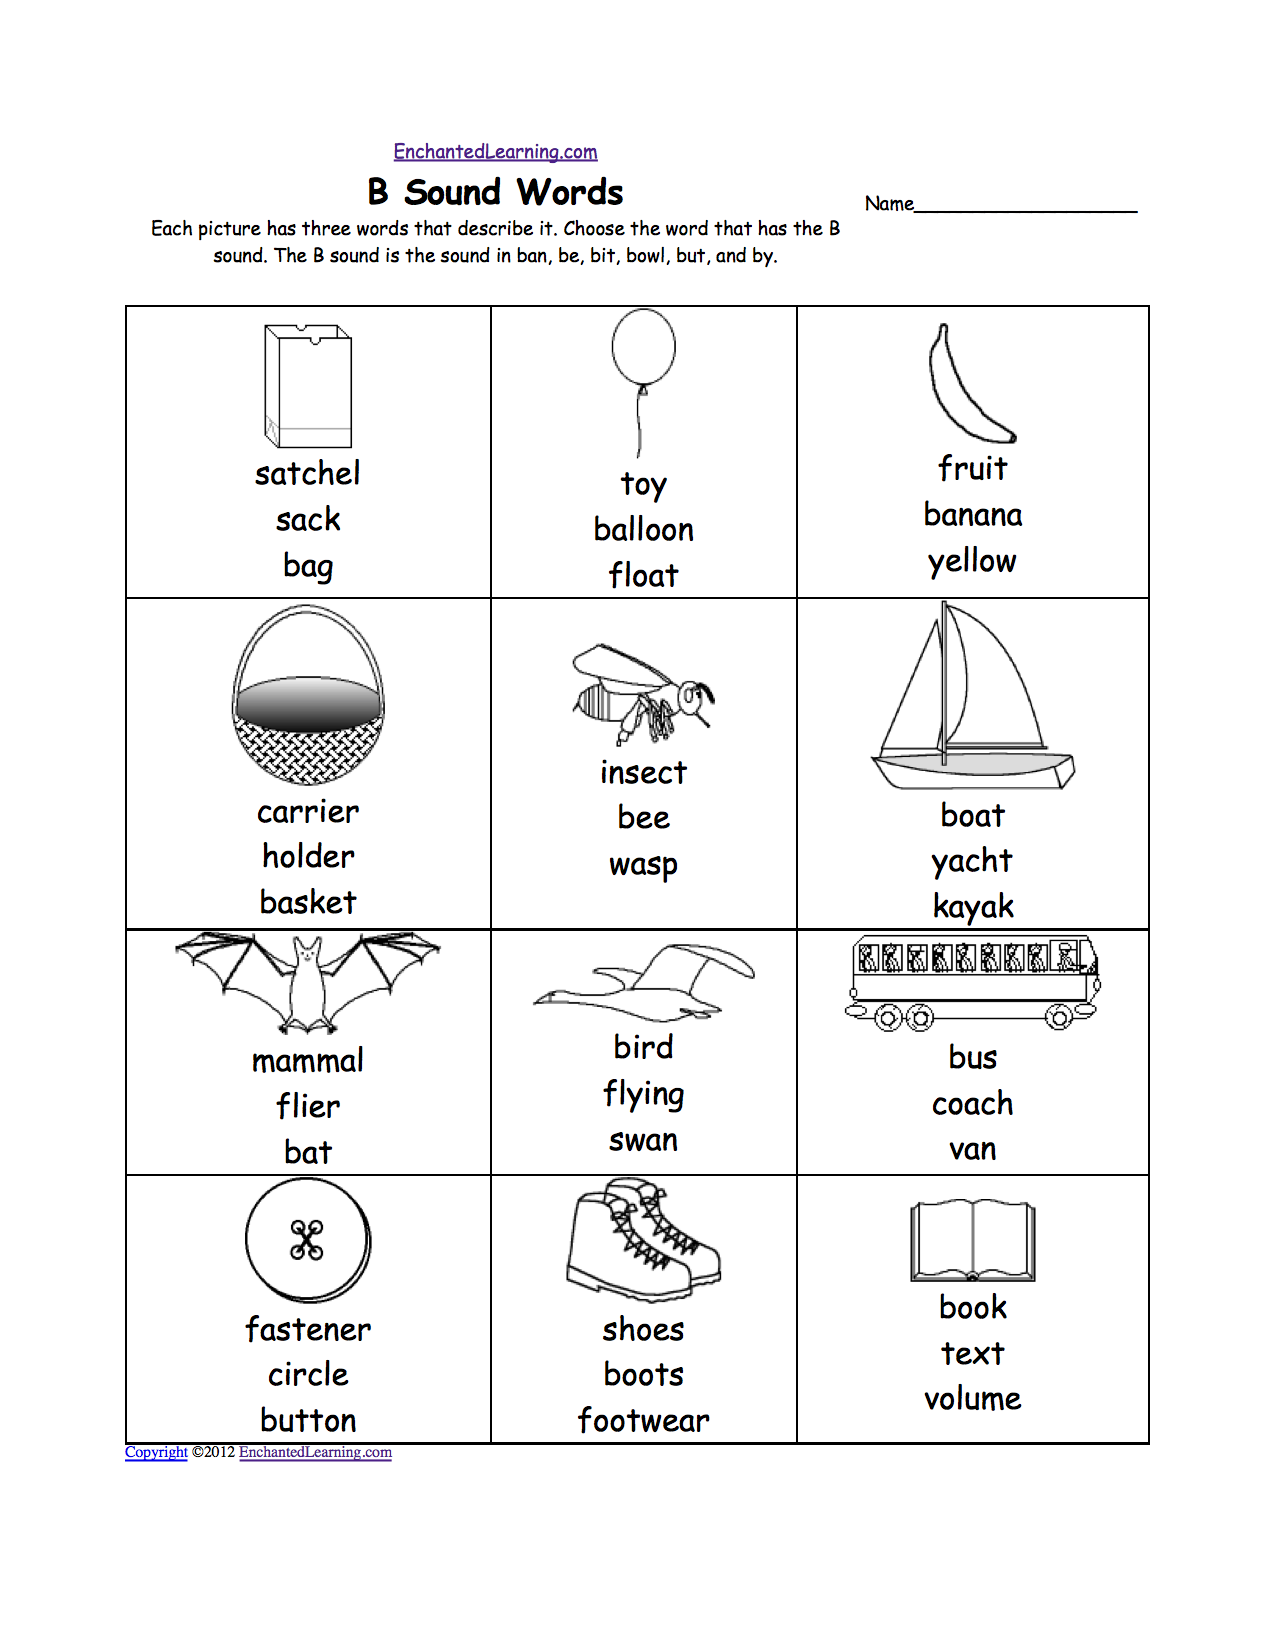 Aldiablosus  Mesmerizing Phonics Worksheets Multiple Choice Worksheets To Print  With Licious Quotbquot Sound Phonics Worksheet Multiple Choice Each Picture Has Three Words That Describe It Choose The Word That Has A Quotbquot Sound The Quotbquot Sound Is The Sound  With Appealing Density Worksheet  Answers Also Rd Grade Phonics Worksheets In Addition Personal Pronouns Worksheet For Grade  And Worksheet For Skip Counting As Well As Neil Armstrong Worksheet Additionally Life Cycle Of Stars Worksheet From Enchantedlearningcom With Aldiablosus  Licious Phonics Worksheets Multiple Choice Worksheets To Print  With Appealing Quotbquot Sound Phonics Worksheet Multiple Choice Each Picture Has Three Words That Describe It Choose The Word That Has A Quotbquot Sound The Quotbquot Sound Is The Sound  And Mesmerizing Density Worksheet  Answers Also Rd Grade Phonics Worksheets In Addition Personal Pronouns Worksheet For Grade  From Enchantedlearningcom